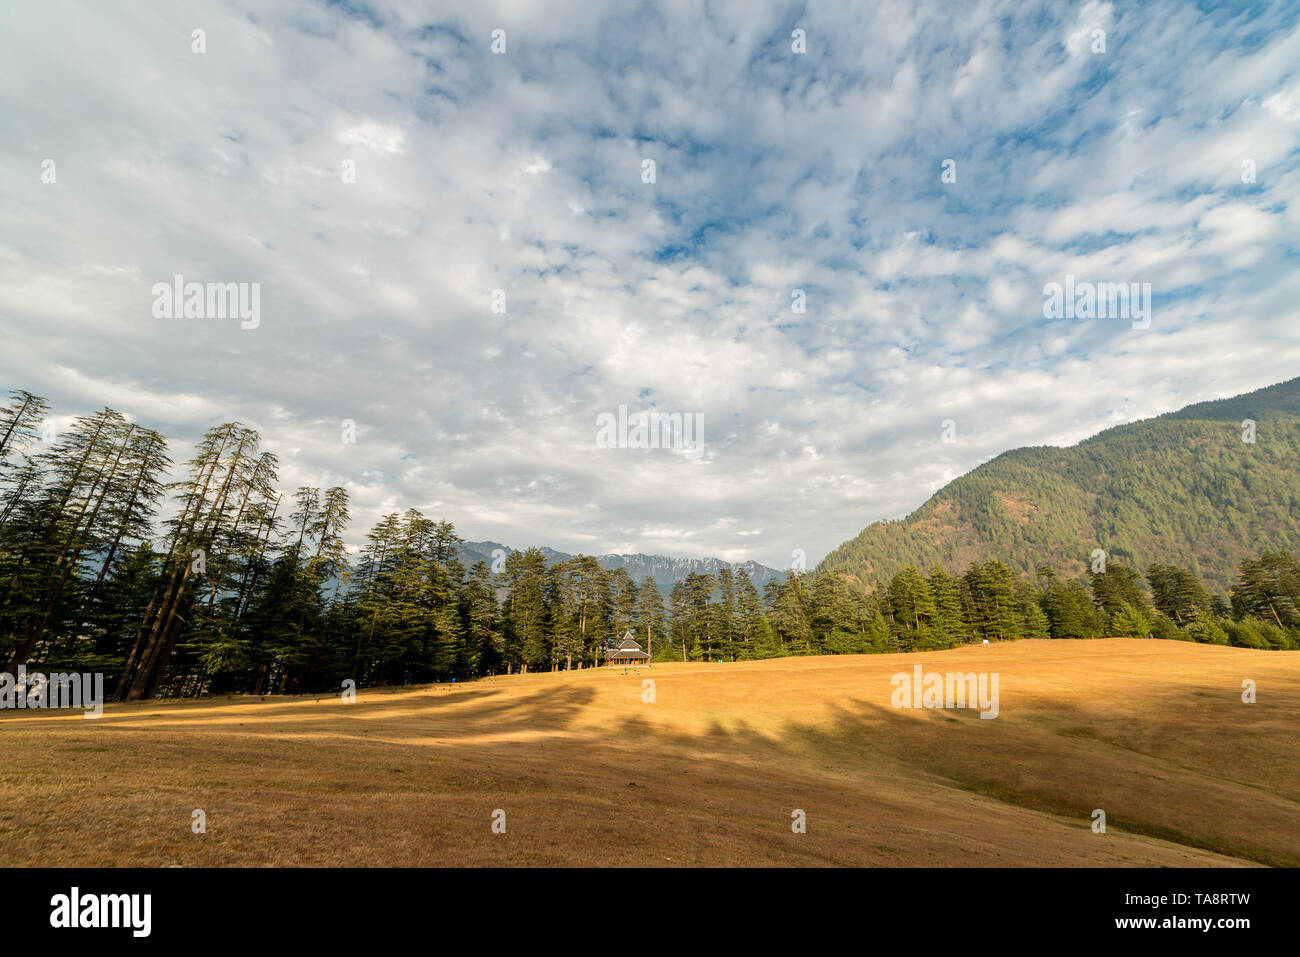 Sunset in himalayas - Beautifull evening in mountains - Shahgarh Meadow - - Stock Image